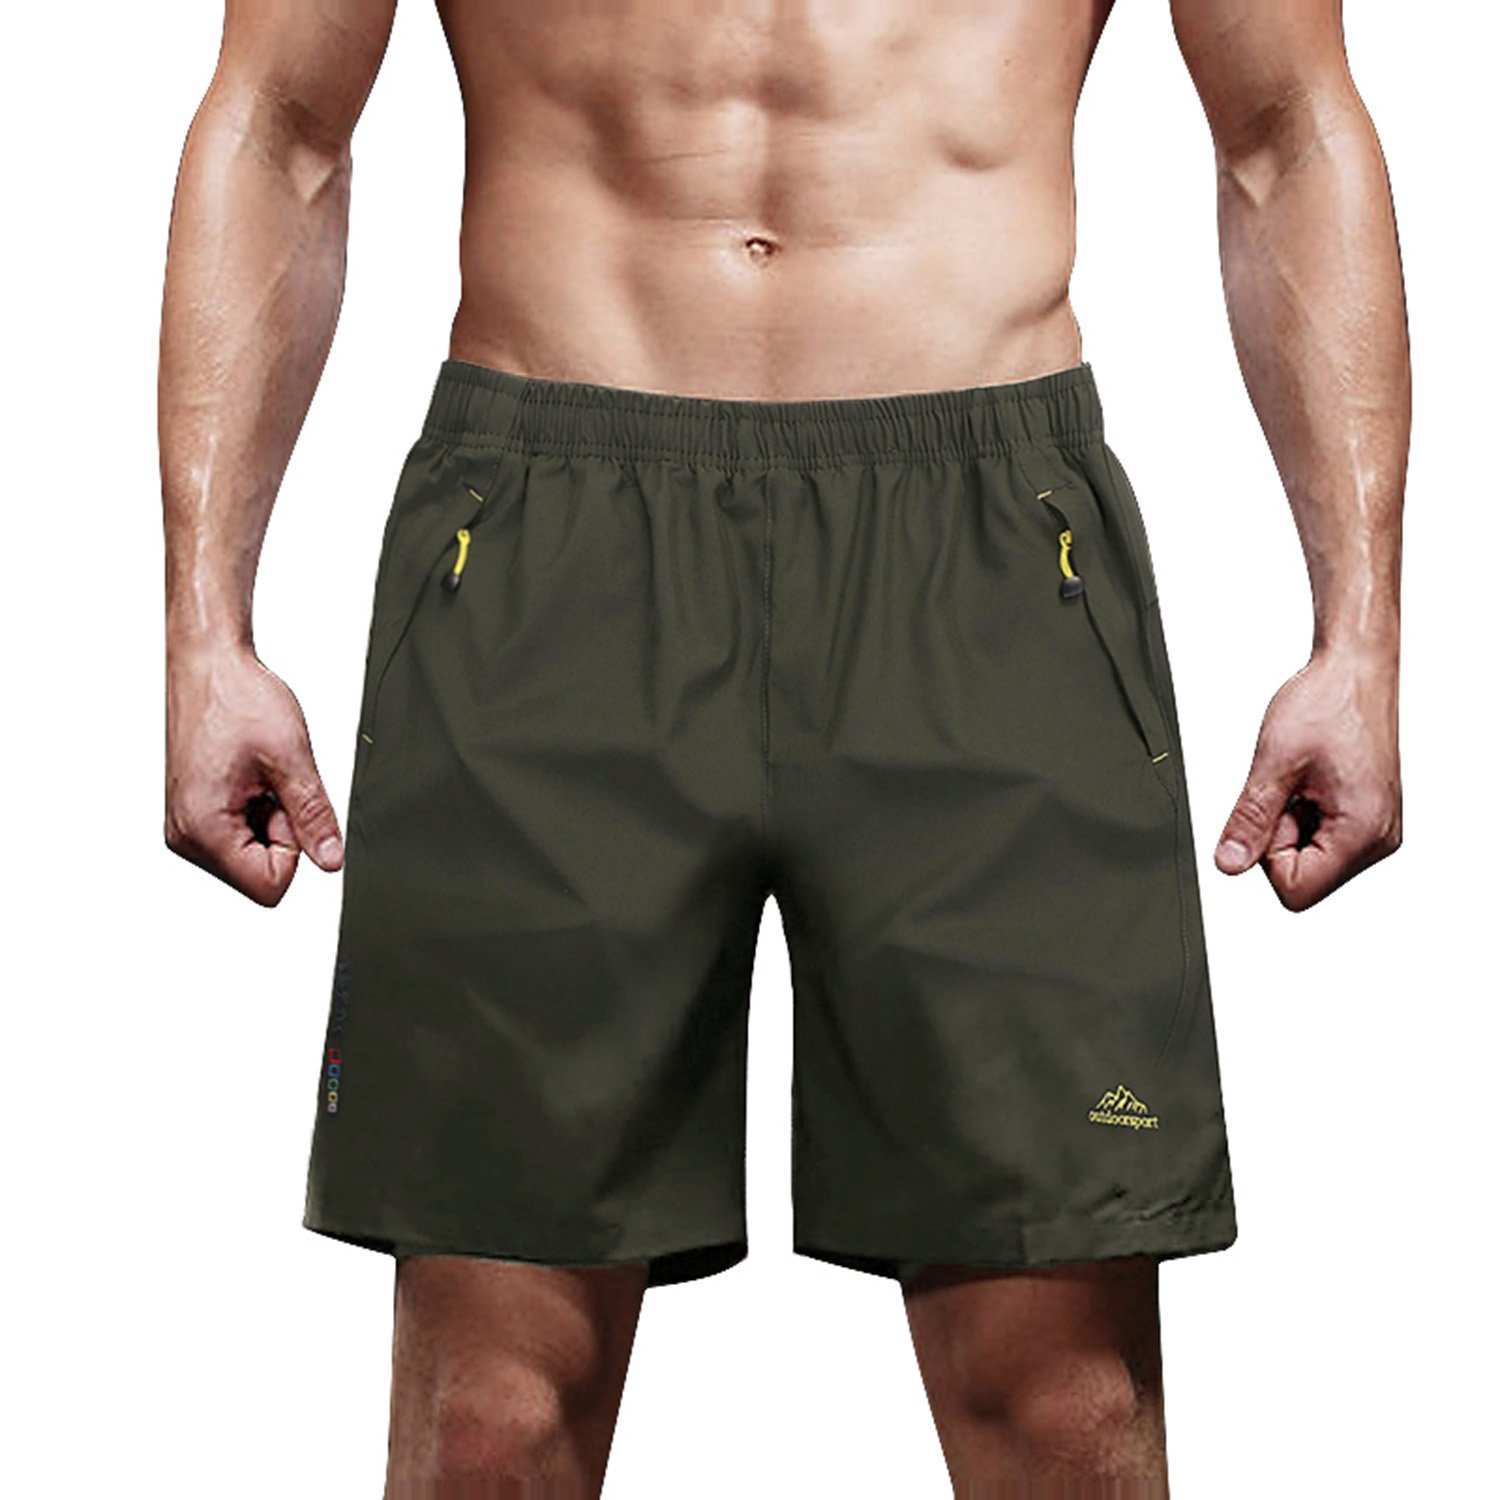 Quick Dry Shorts for Men Hiking Shorts Running Shorts Performance Shorts Climbing Shorts Camping Shorts for Men Olive by MAGCOMSEN